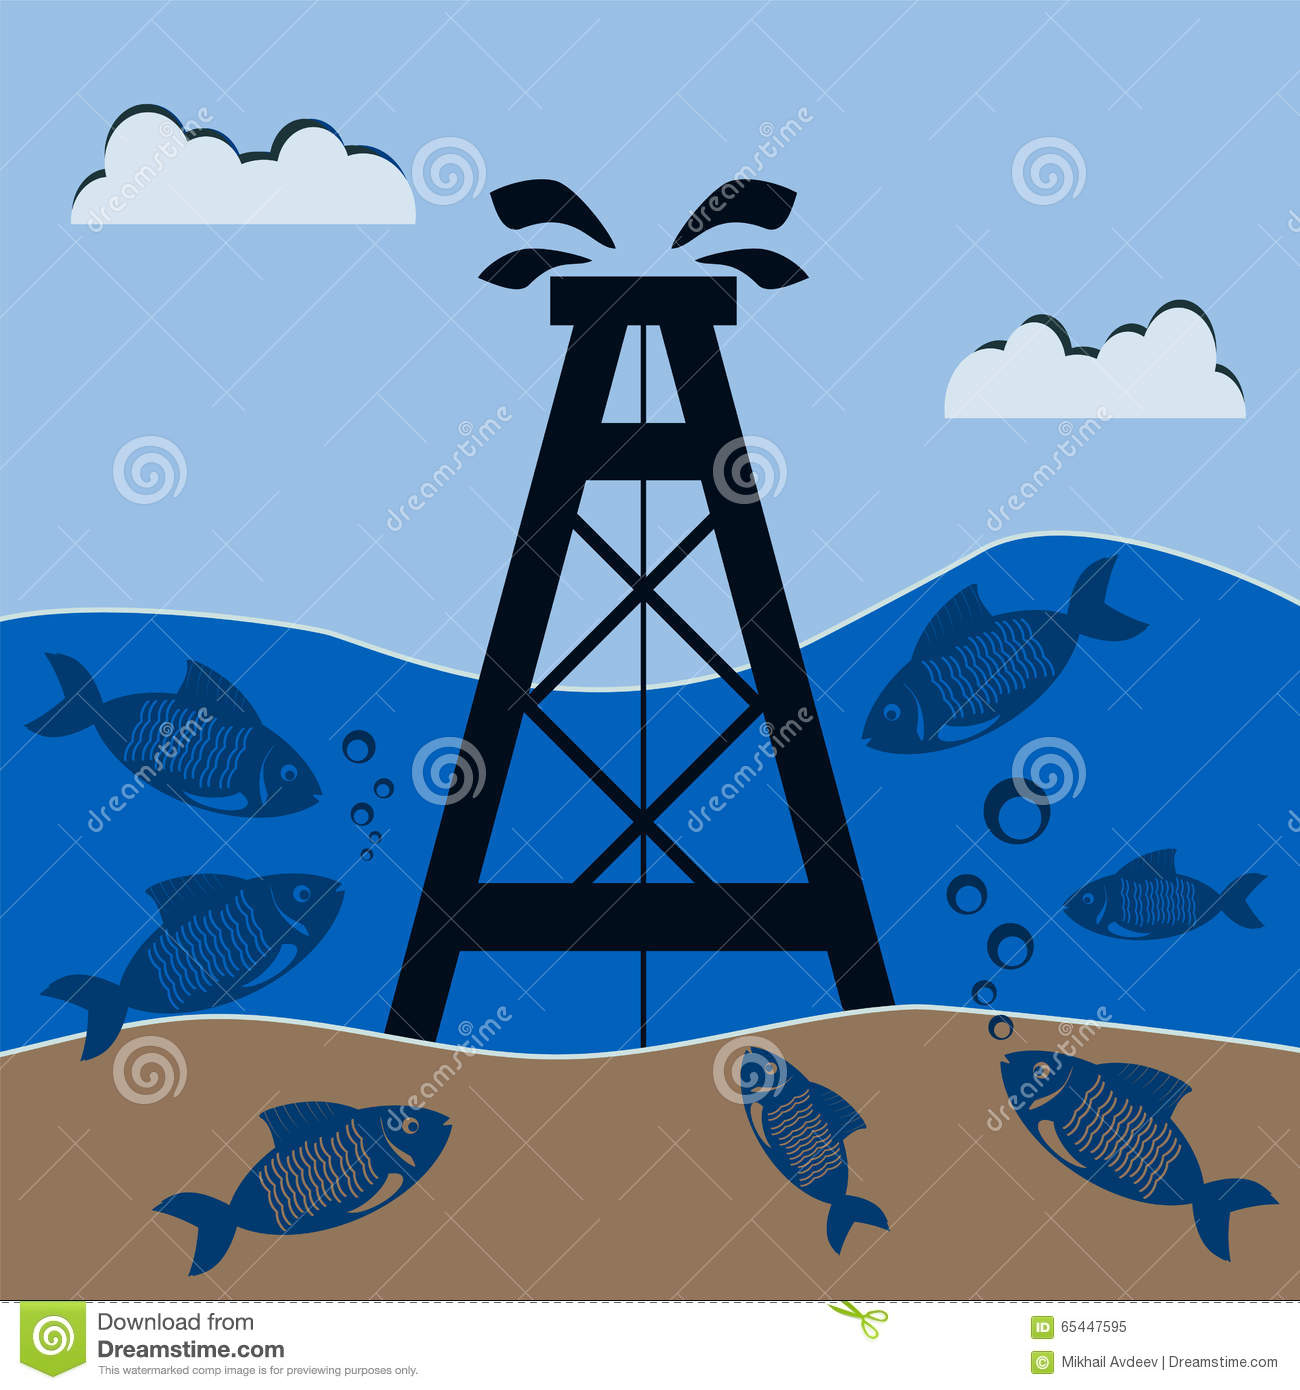 Oil rig under water with the fish. Mineral production